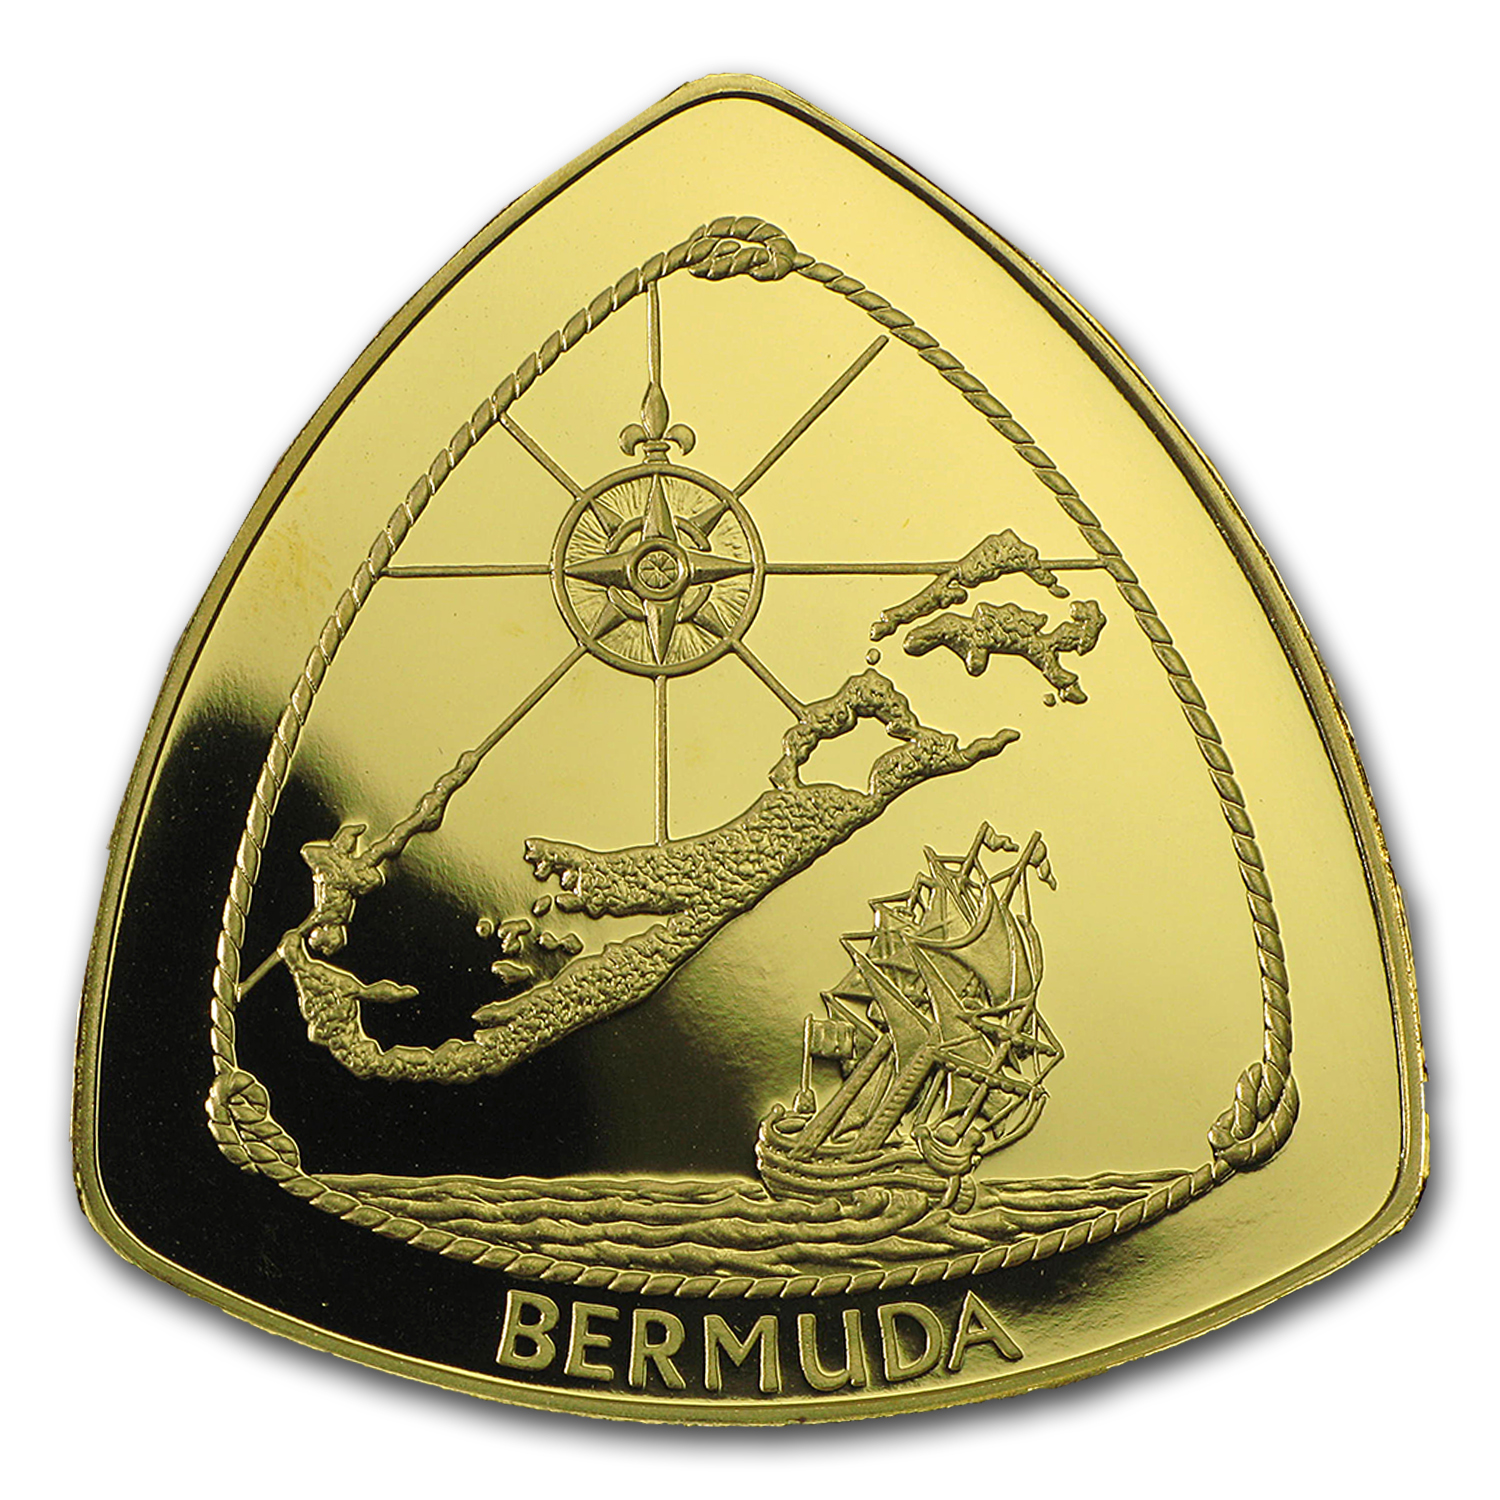 Bermuda 1996 Triangle $60 1 oz Gold Coin (Proof)